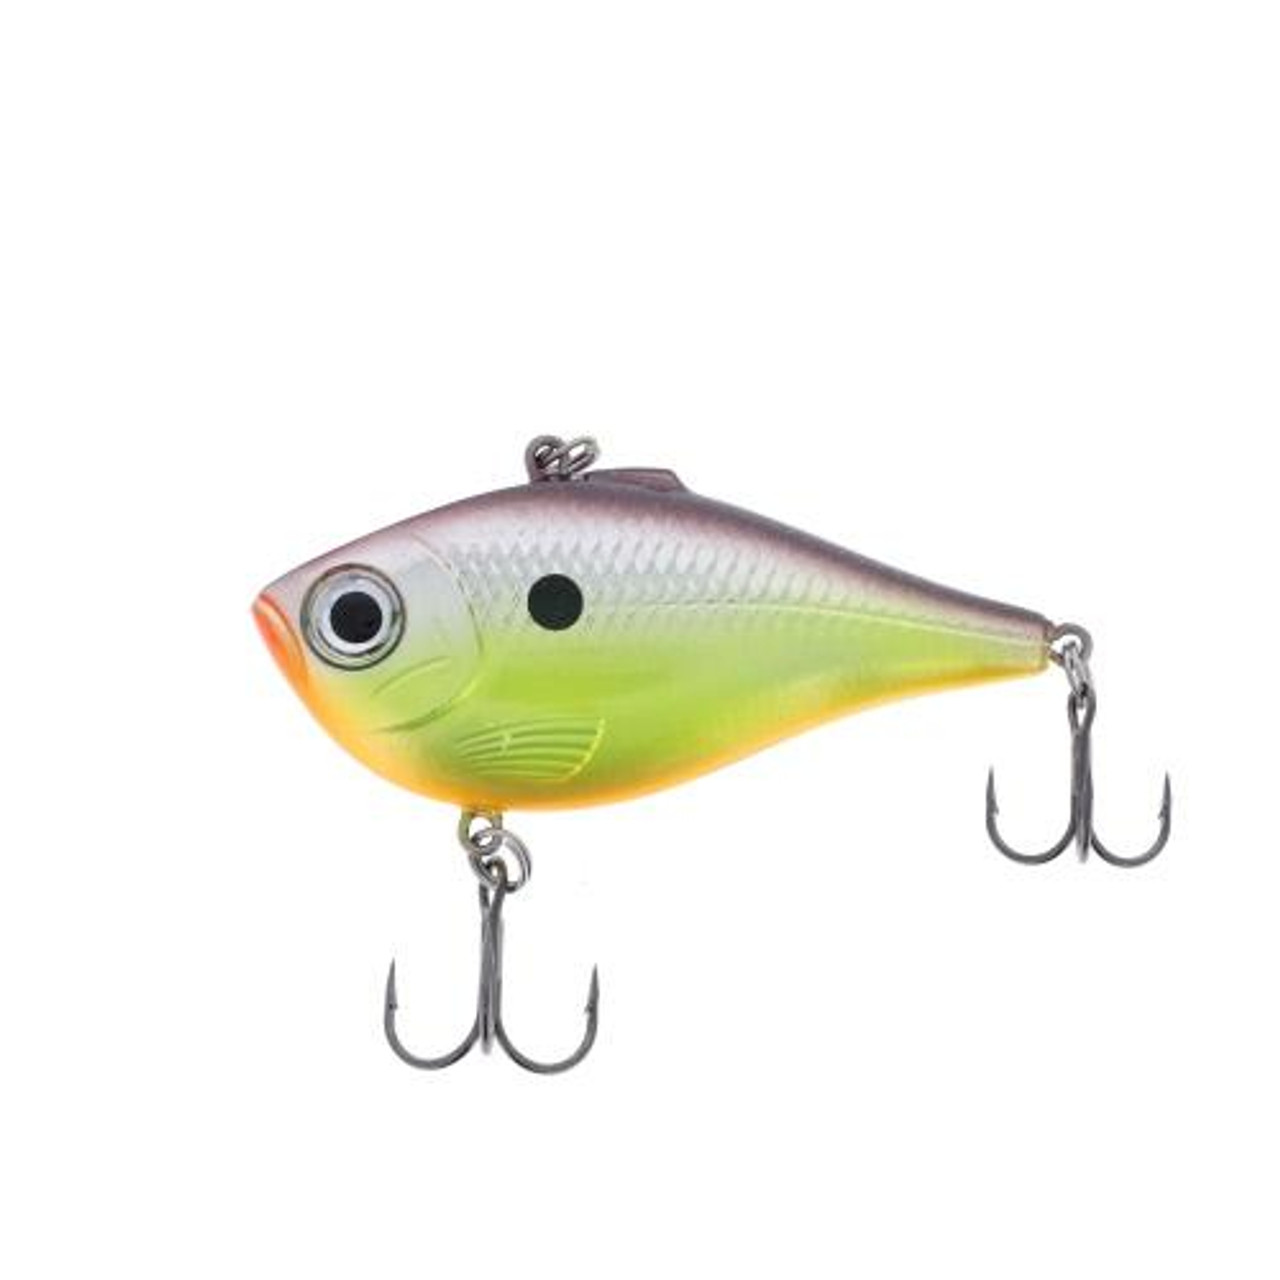 Custom Painted Rippin Rap Style Lipless Crankbait